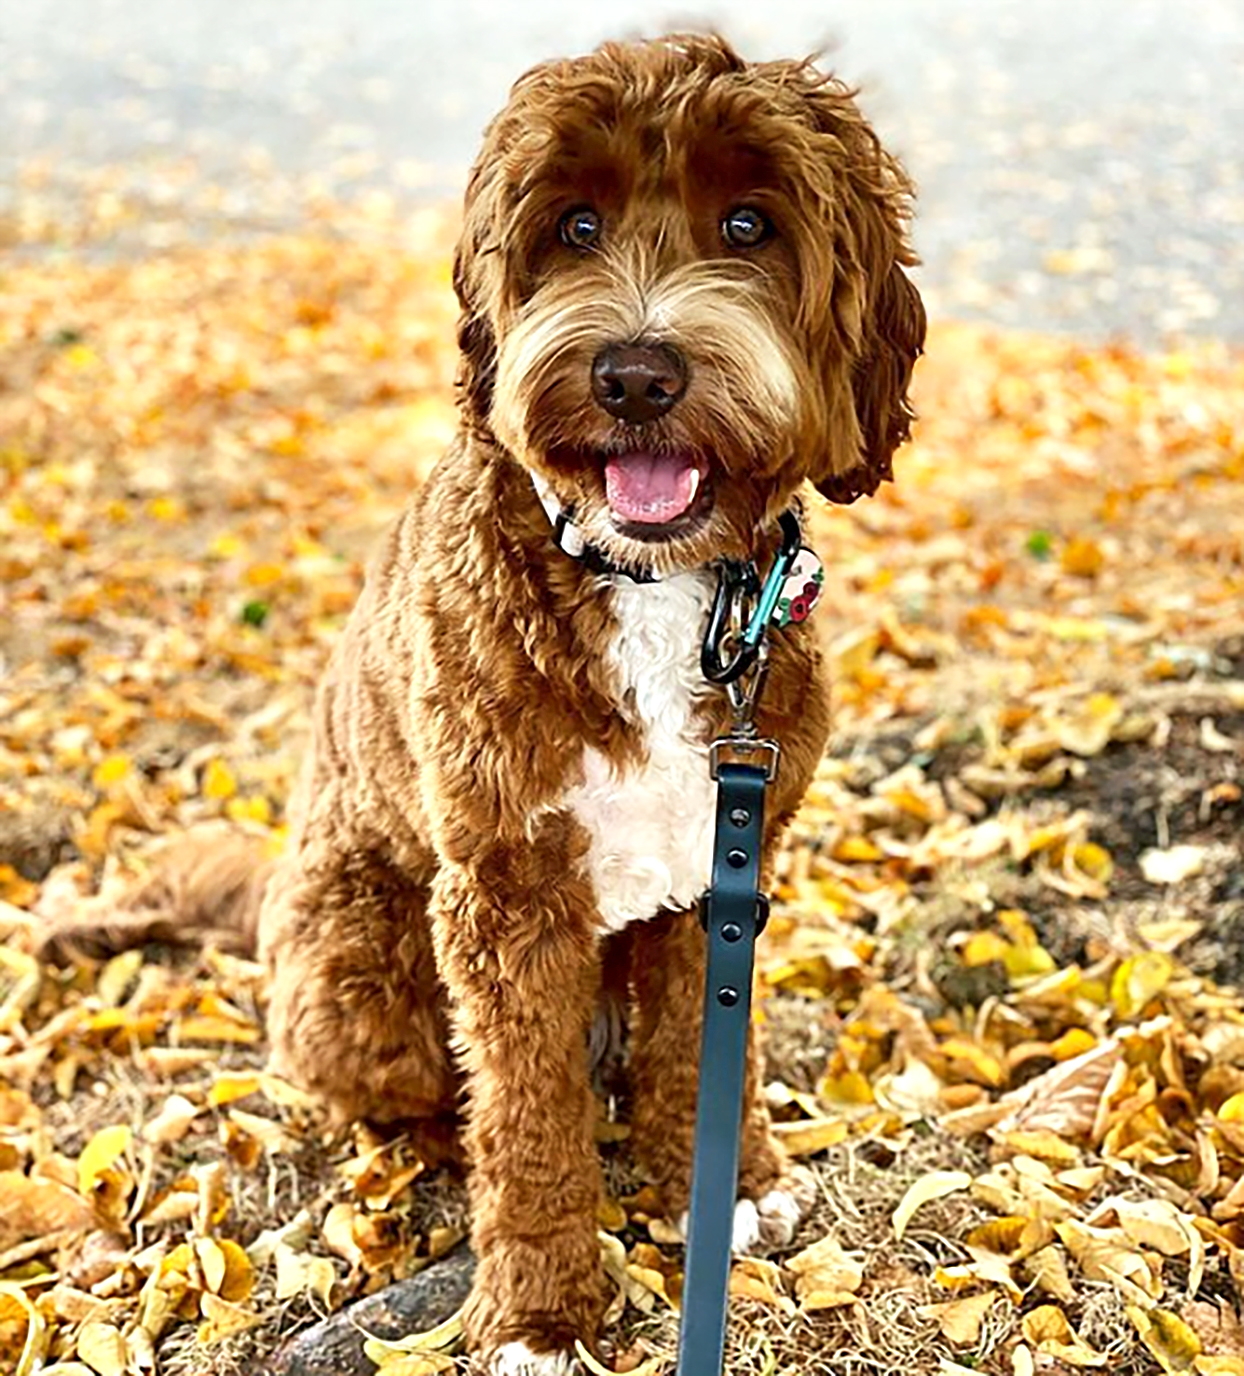 labradoodle with red and white wavy fur sitting in autumn leaves